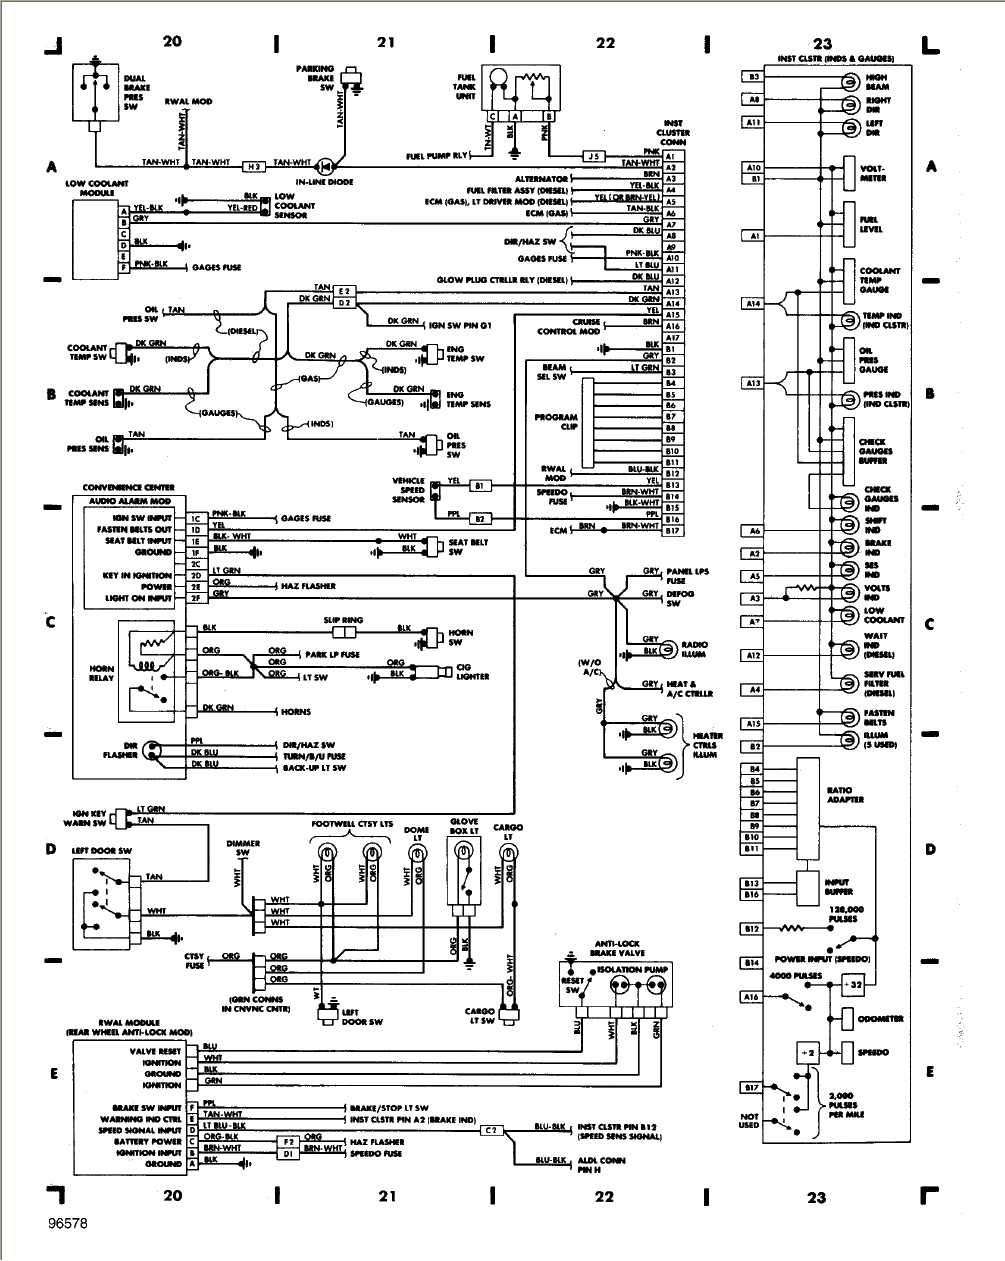 B459 1985 Chevy Truck Fuse Box Diagram Wiring Library